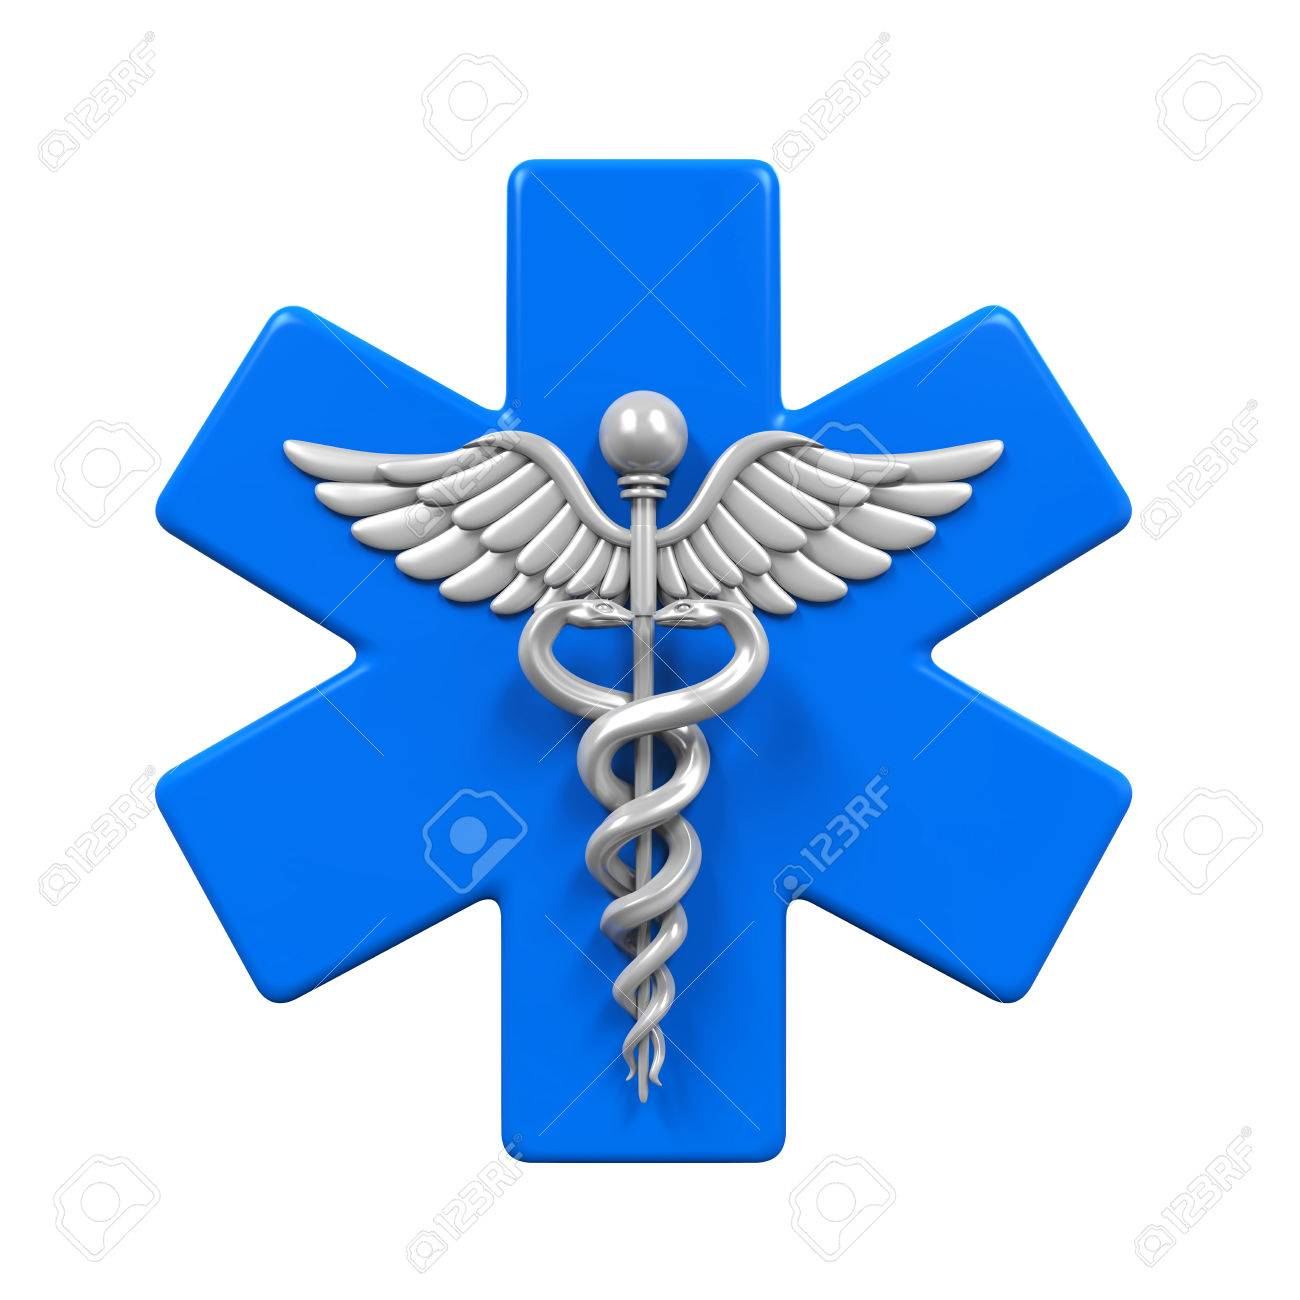 Star Of Life Caduceus Symbol Stock Photo Picture And Royalty Free